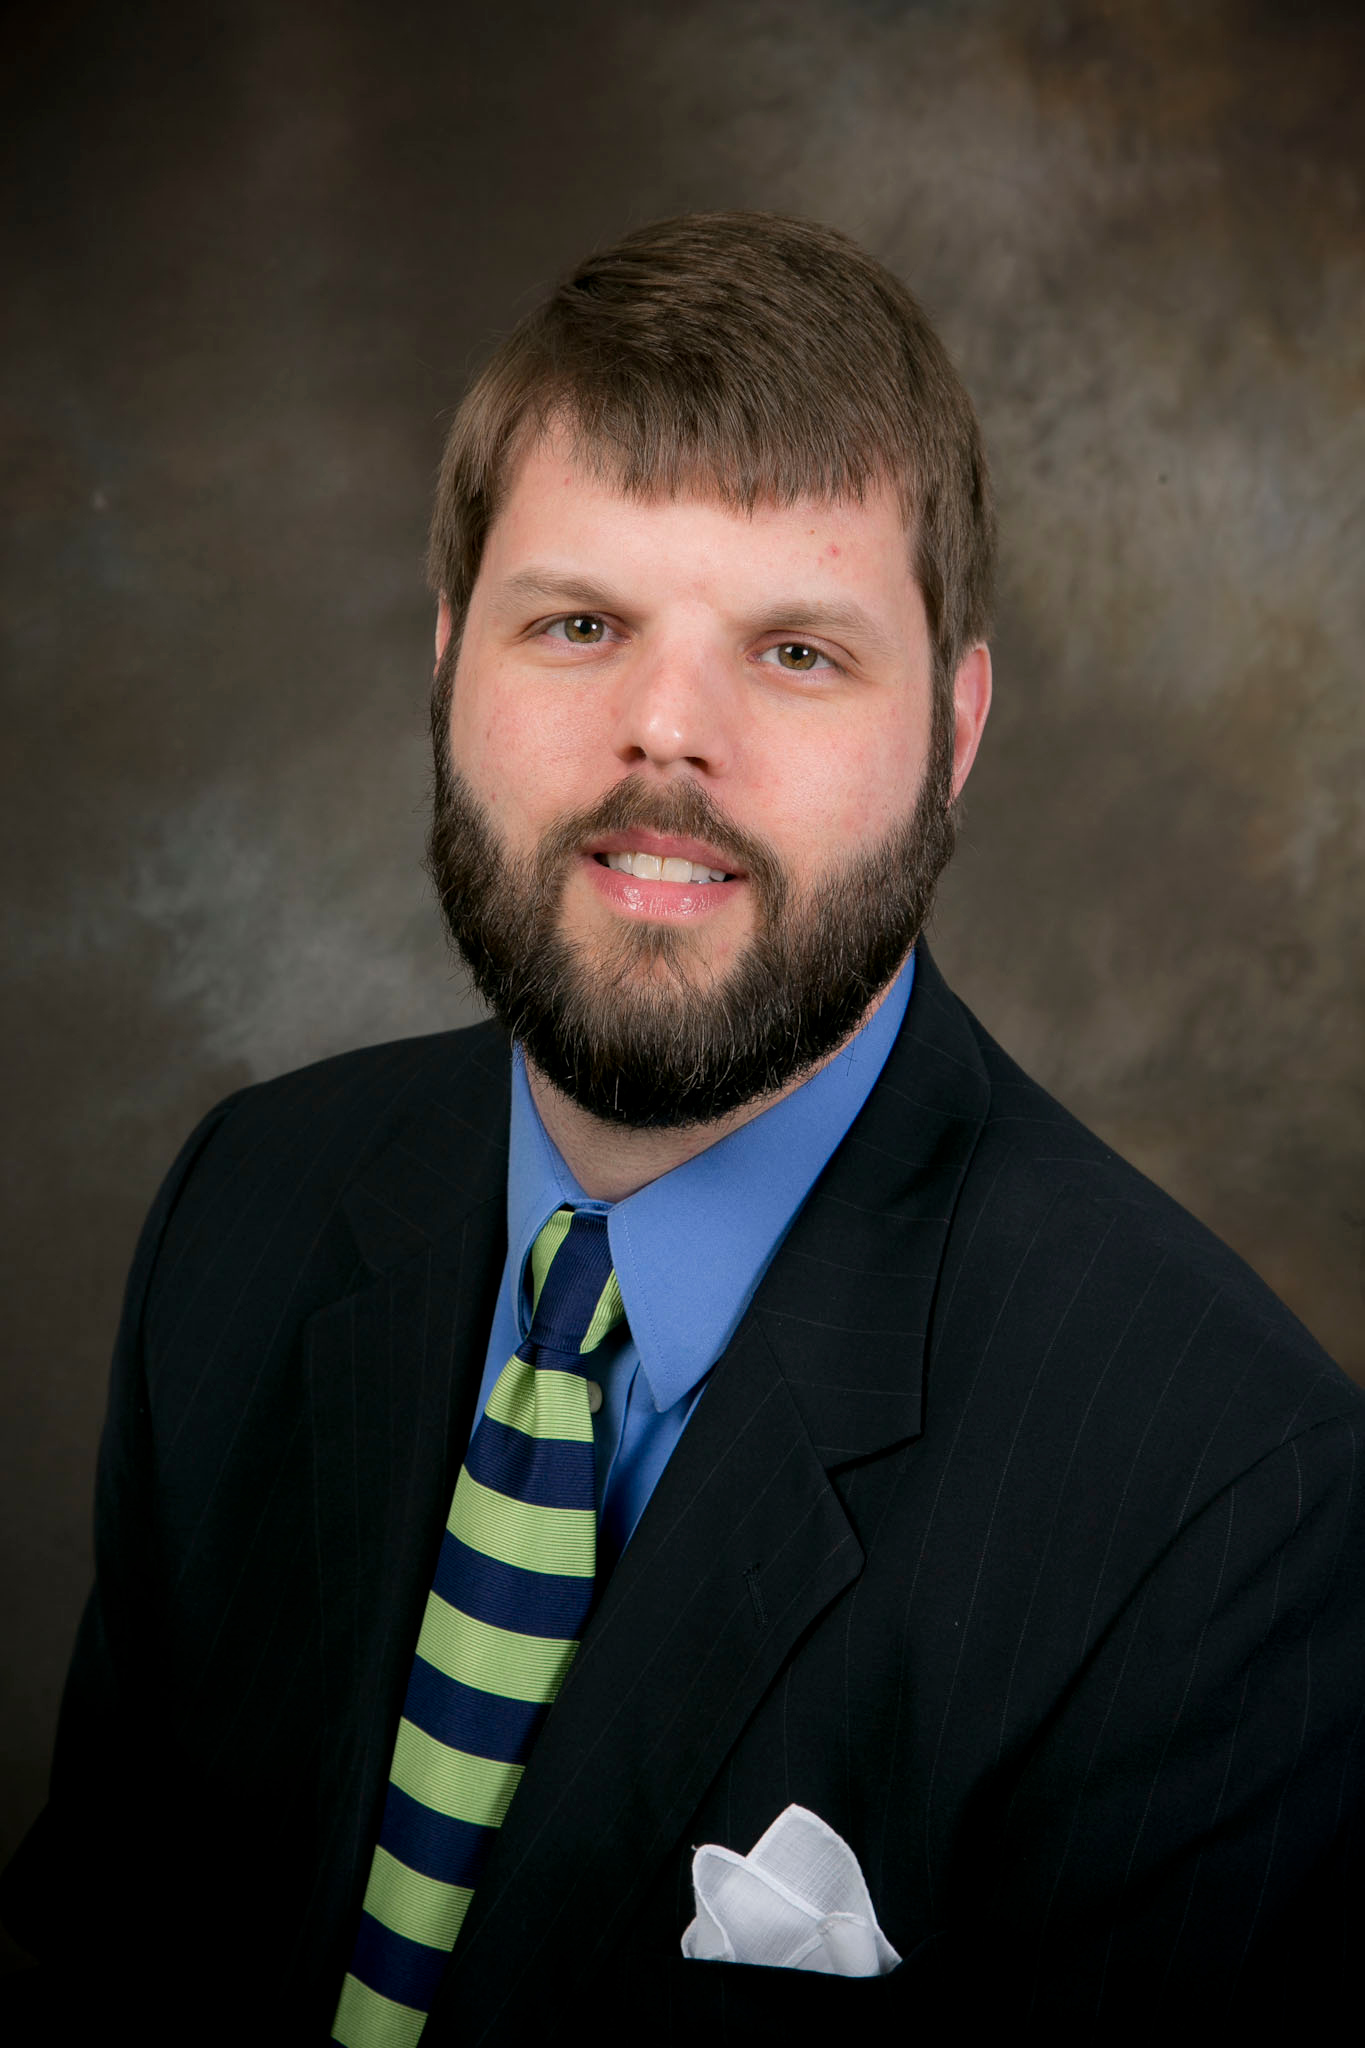 Dr. James Lyles, Post-doctoral Fellow